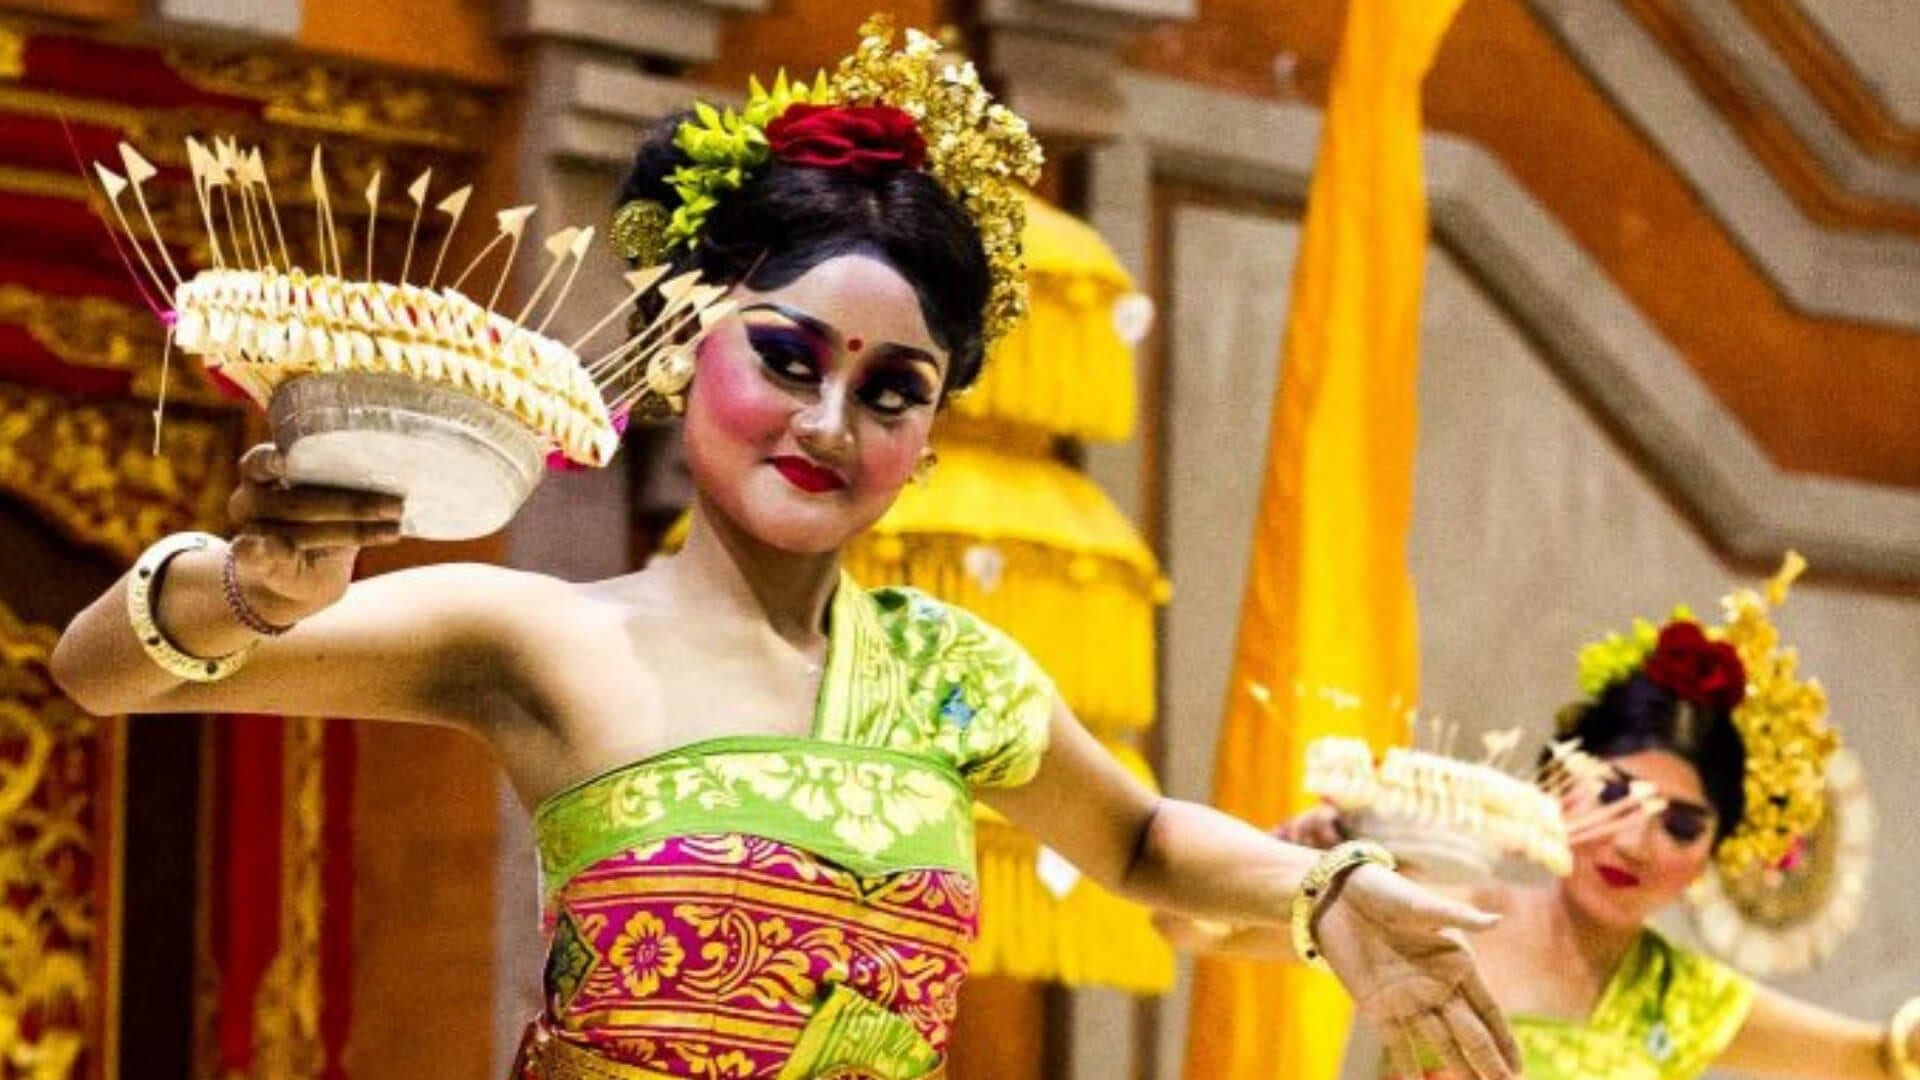 A woman wearing traditional Balinese clothes is dancing in Bali.